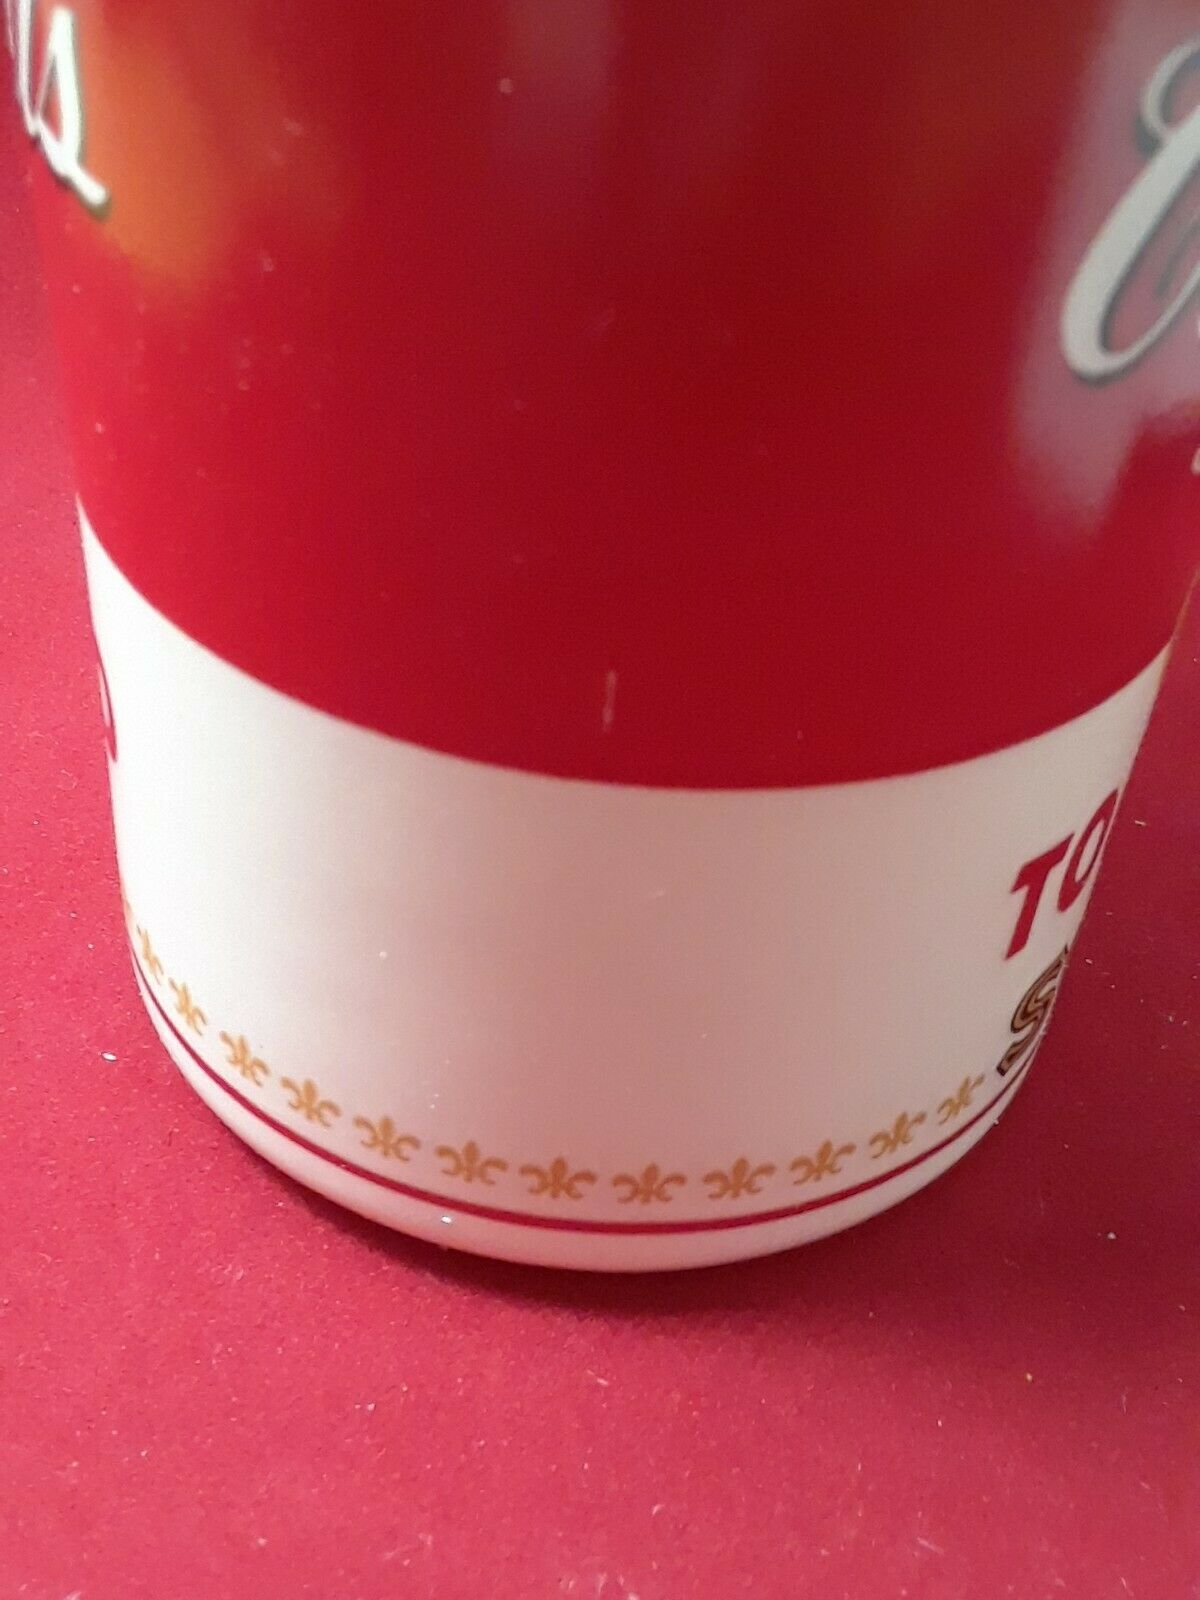 Collectible Campbell's Tomato Soup Mug Cup 8 oz in The Original Styrofoam Mailer image 5